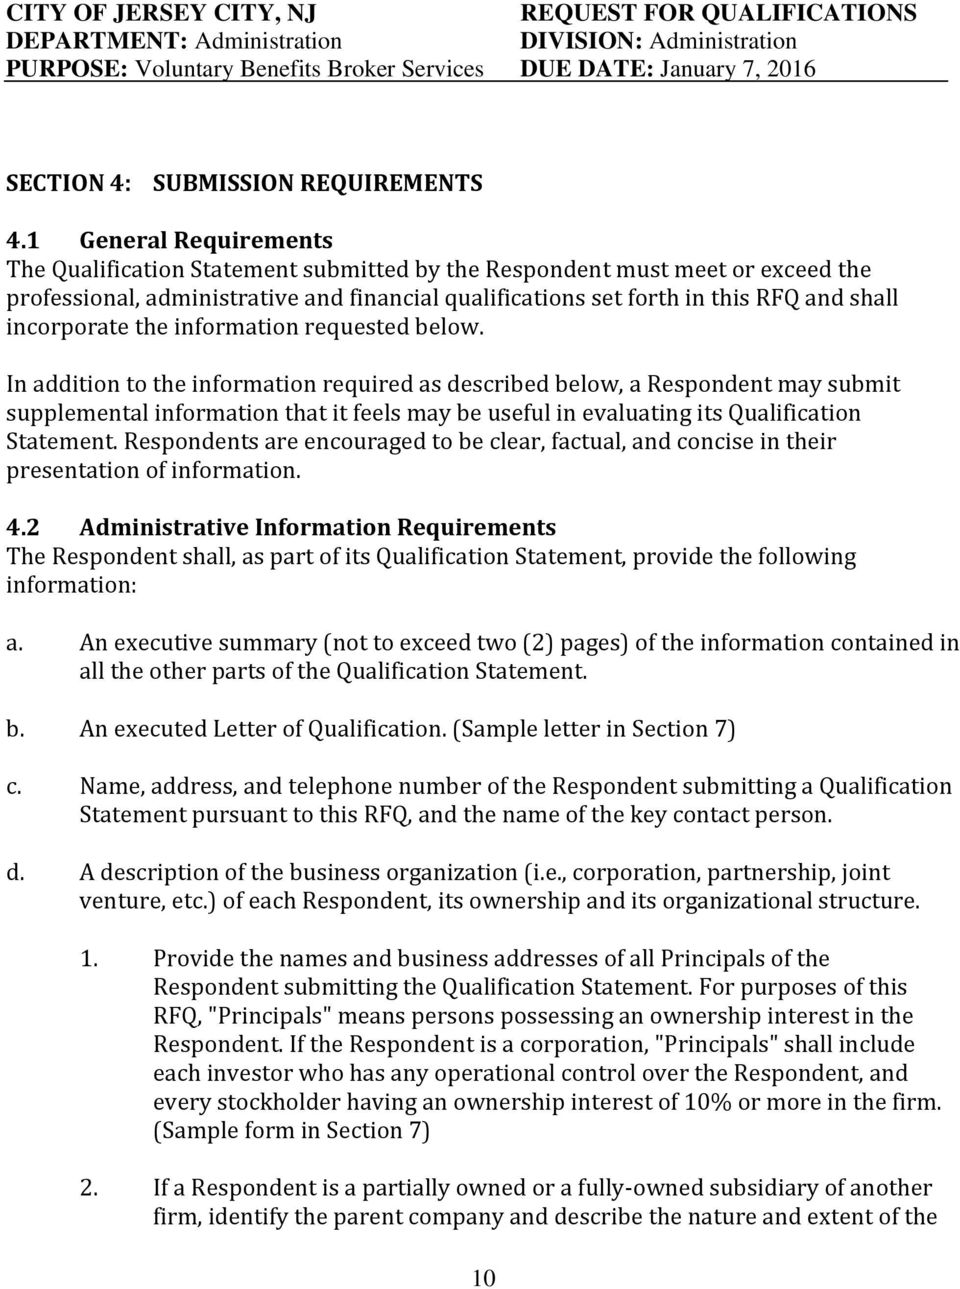 1 General Requirements The Qualification Statement submitted by the Respondent must meet or exceed the professional, administrative and financial qualifications set forth in this RFQ and shall